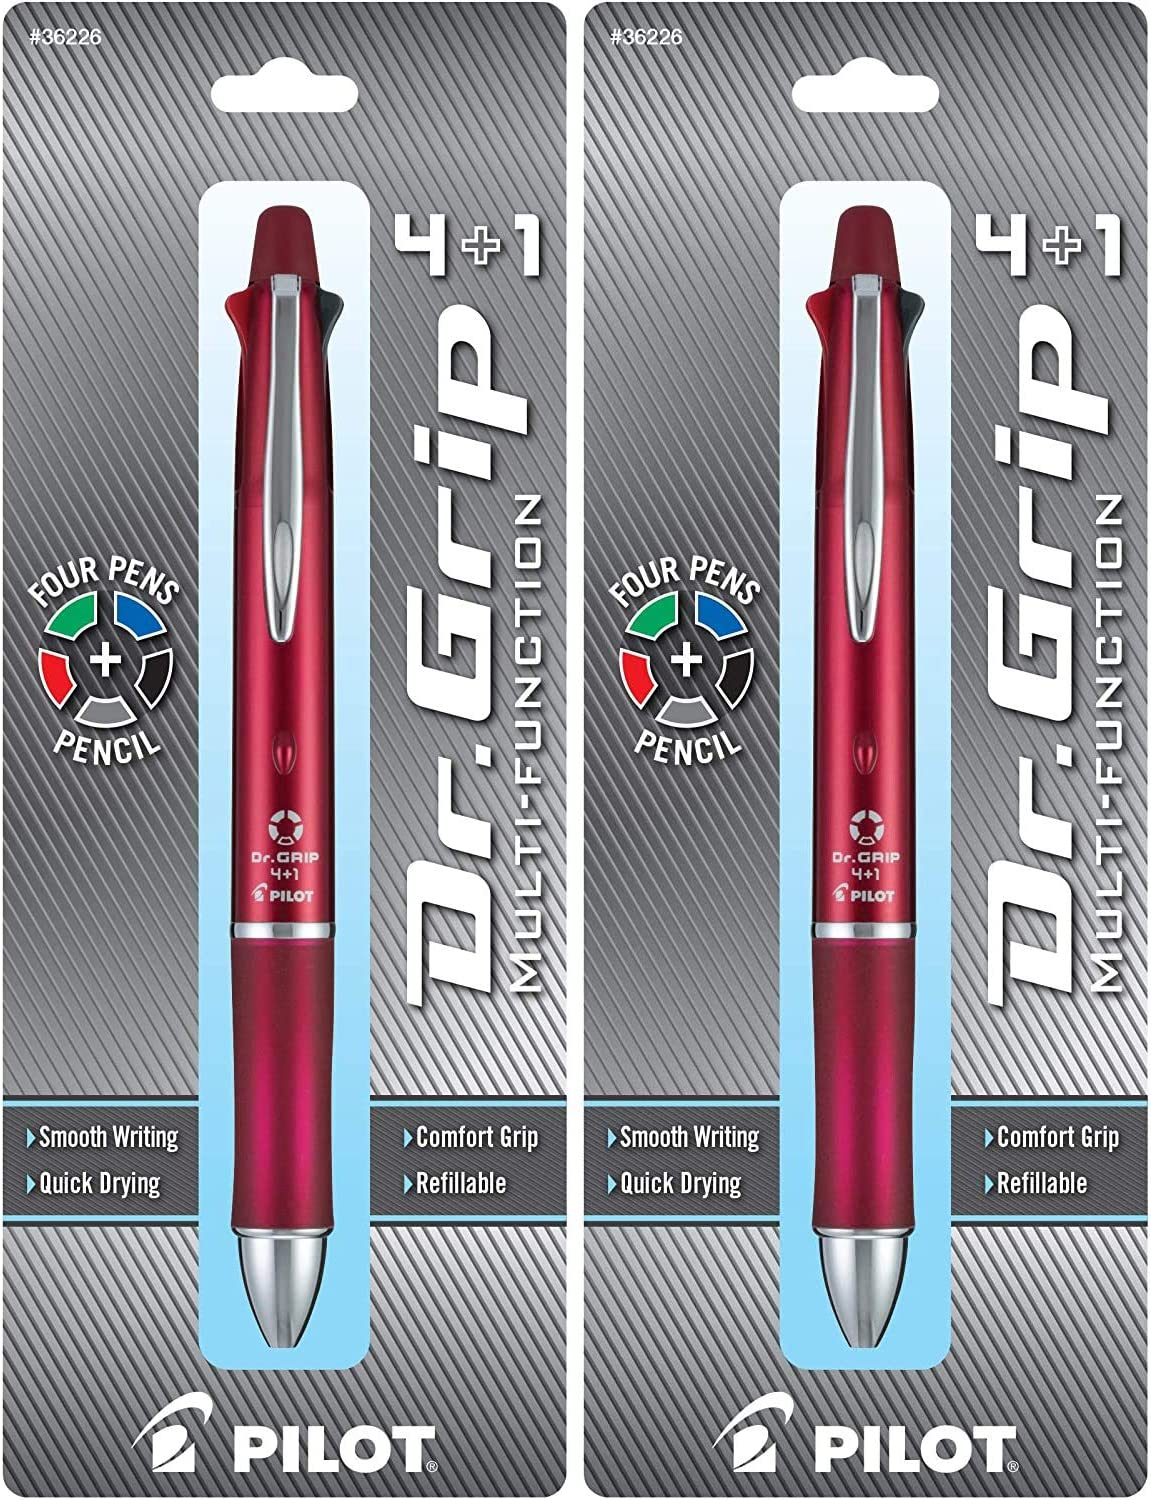 Fine Point Grip 4+1 Multi-Function Refillable /& Retractable Ballpoint Pen Single Pen 36220 PILOT Dr Black//Red//Blue//Green Inks - 1 Black Barrel Pencil